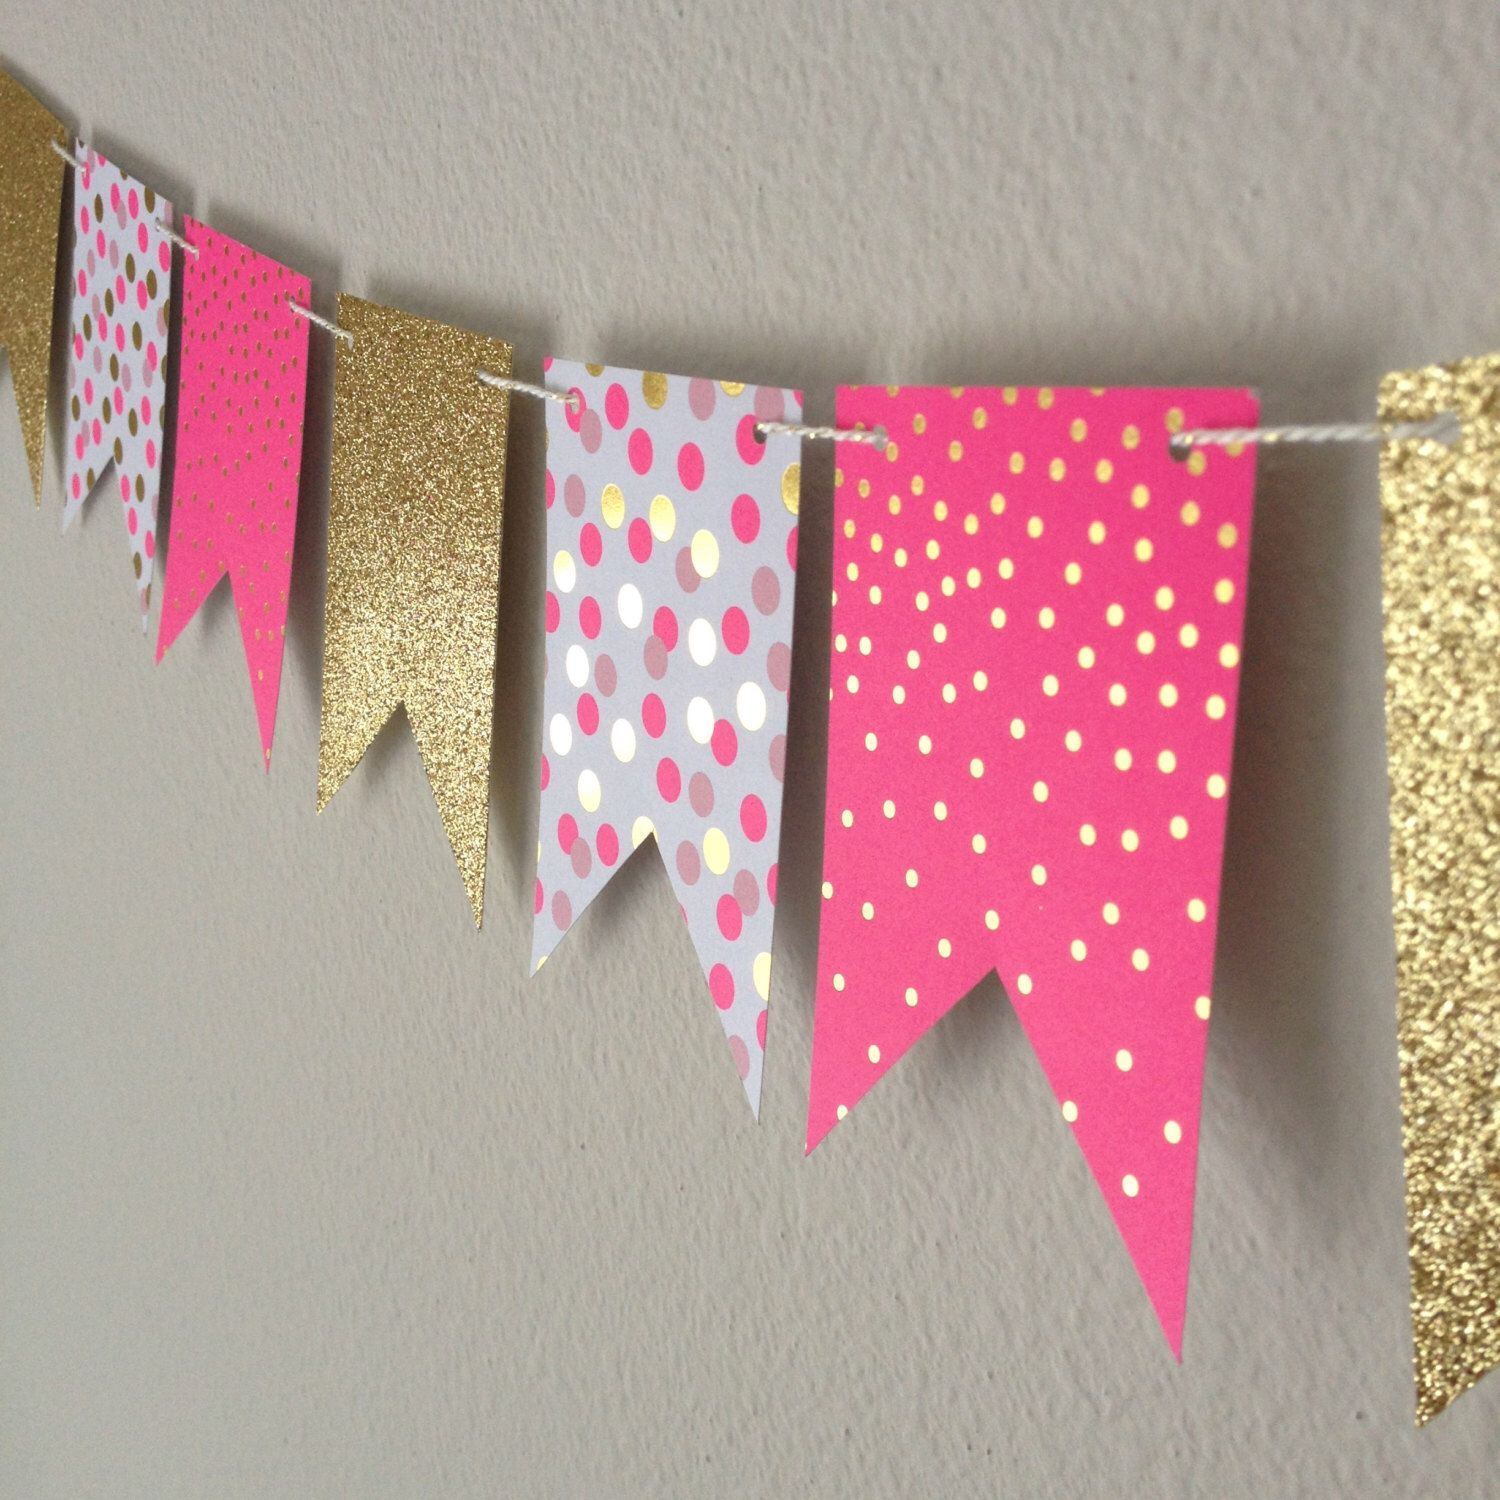 Design banner for etsy - Mini Banner Pink Gold Paper By Partyhappier I Have A Crush On This